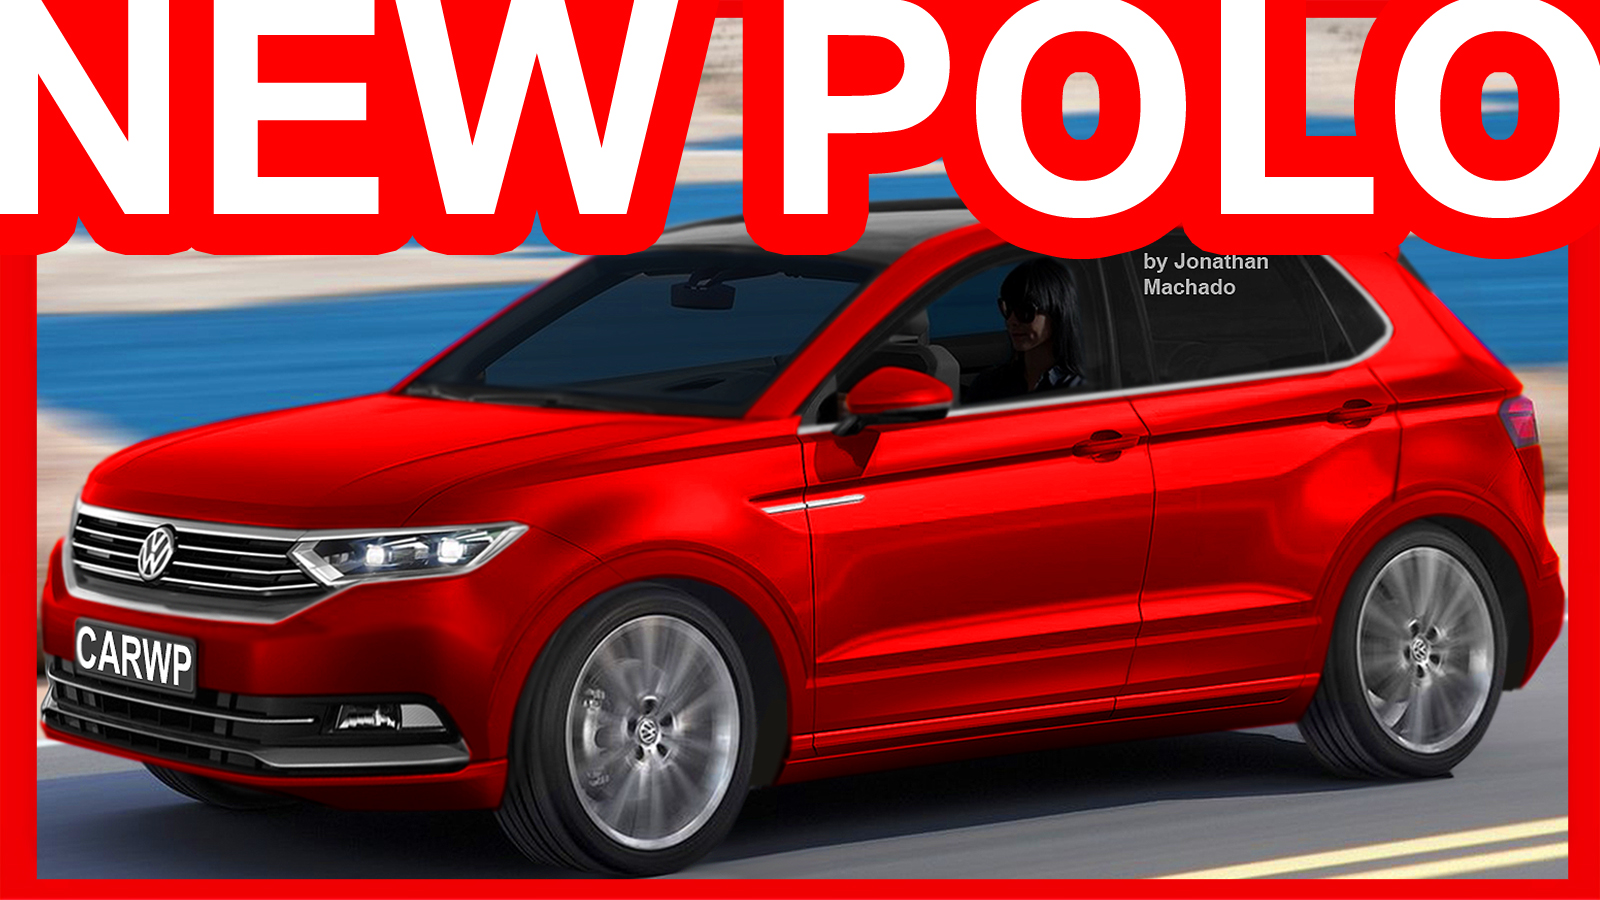 Novo Volkswagen Polo 2018 T Cross Breeze Concept Vw Carwp